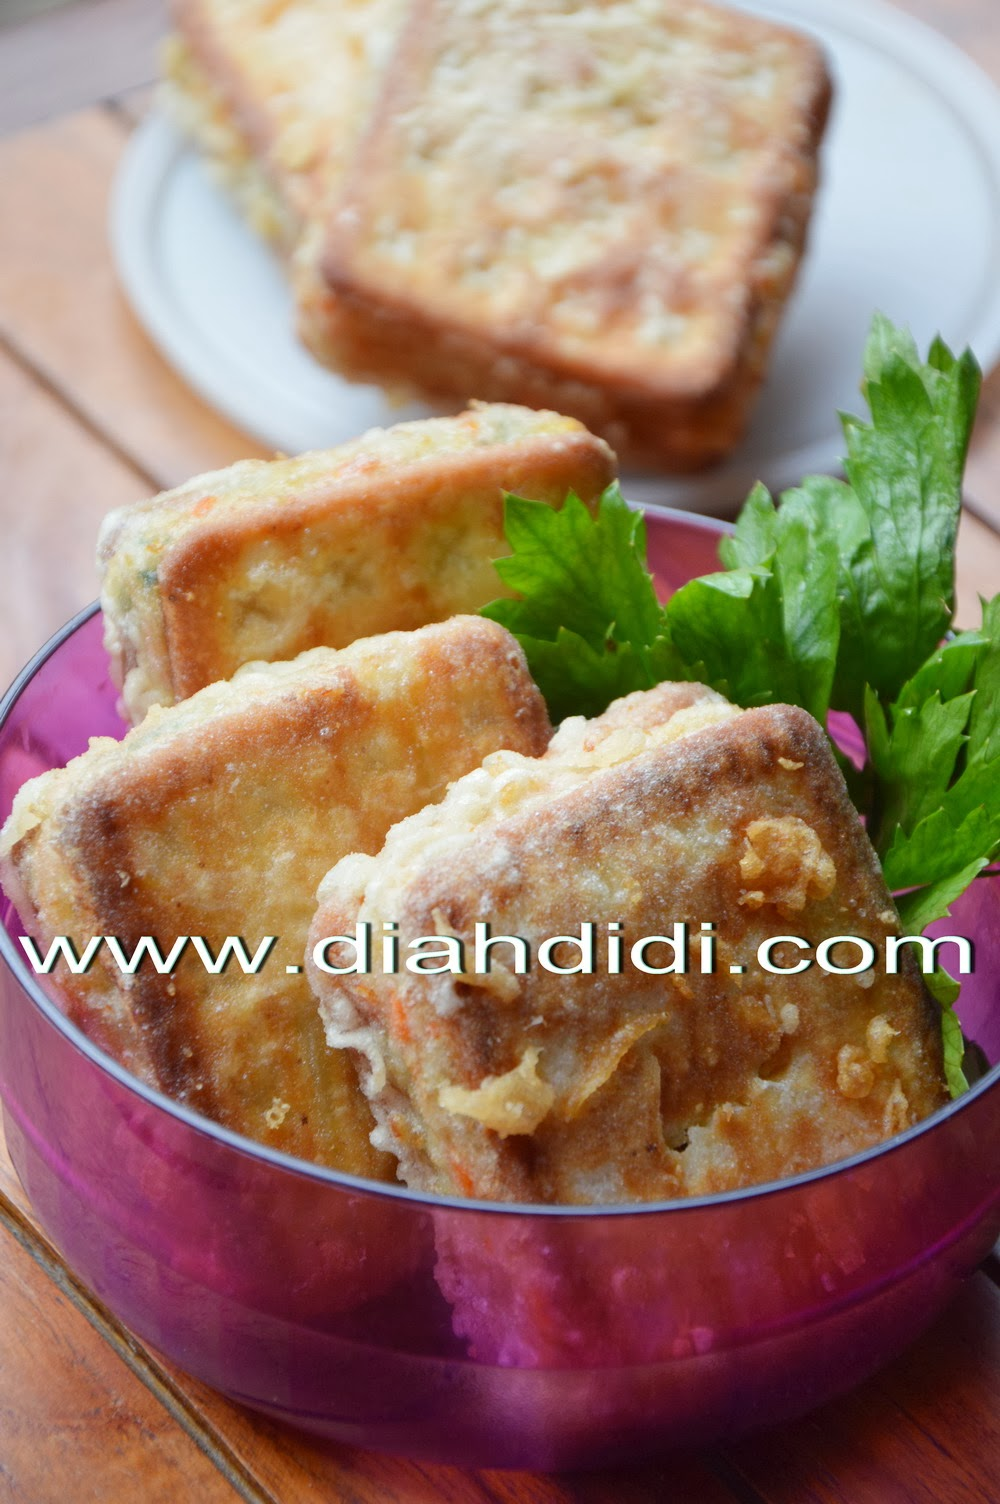 Diah Didis Kitchen Crakers Goreng